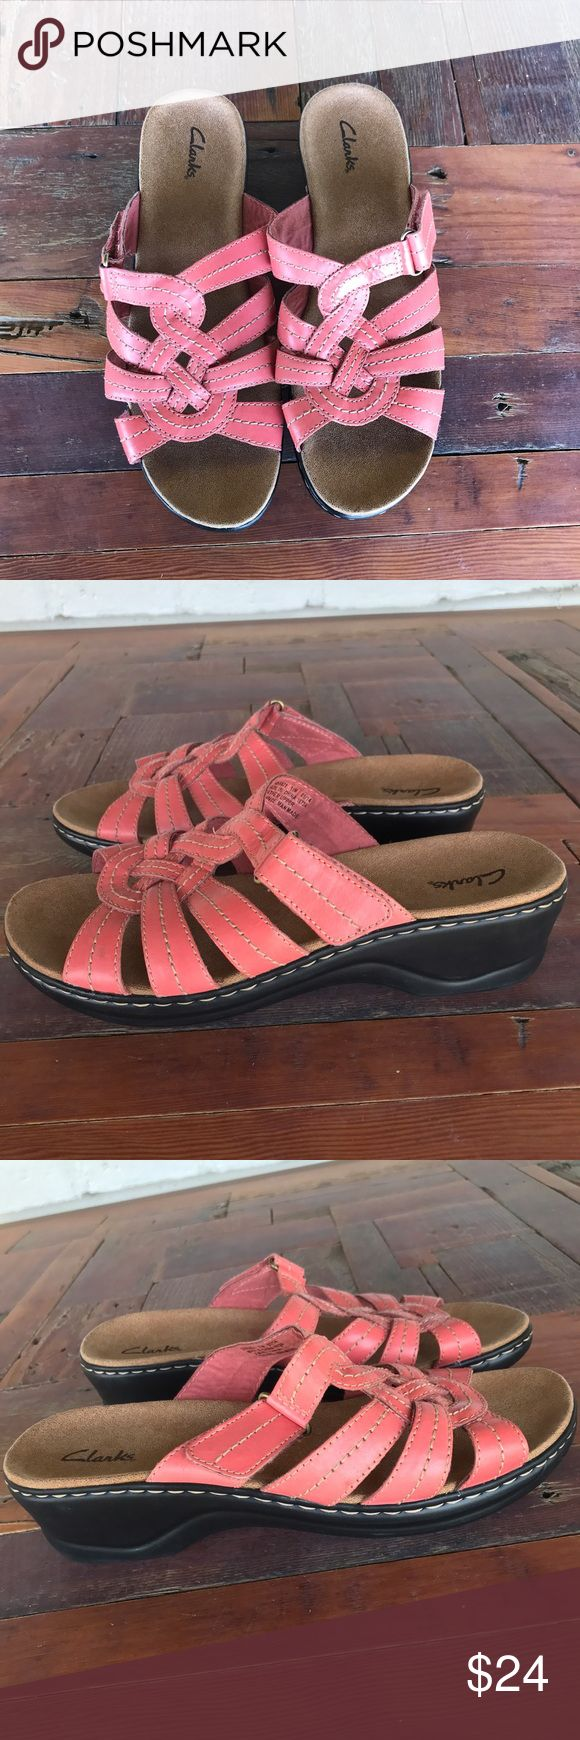 Clarks Lexi Dill Coral Leather Sandal Velcro Strap Clarks Lexi Dill Coral sandals. A beautiful coral pink leather sandal with tan footbed and black rubber sole. Velcro strap on side gives a personalized fit. There is a small, 2 inch lift wedge on these. Soft and comfortable footbed makes these perfect for vacation, travel, or everyday wear. Leather is woven and braided together. Excellent condition, no flaws or signs of wear. Sticker says Tige de Cuir. Bundle for a 20% discount. Clarks Shoes…